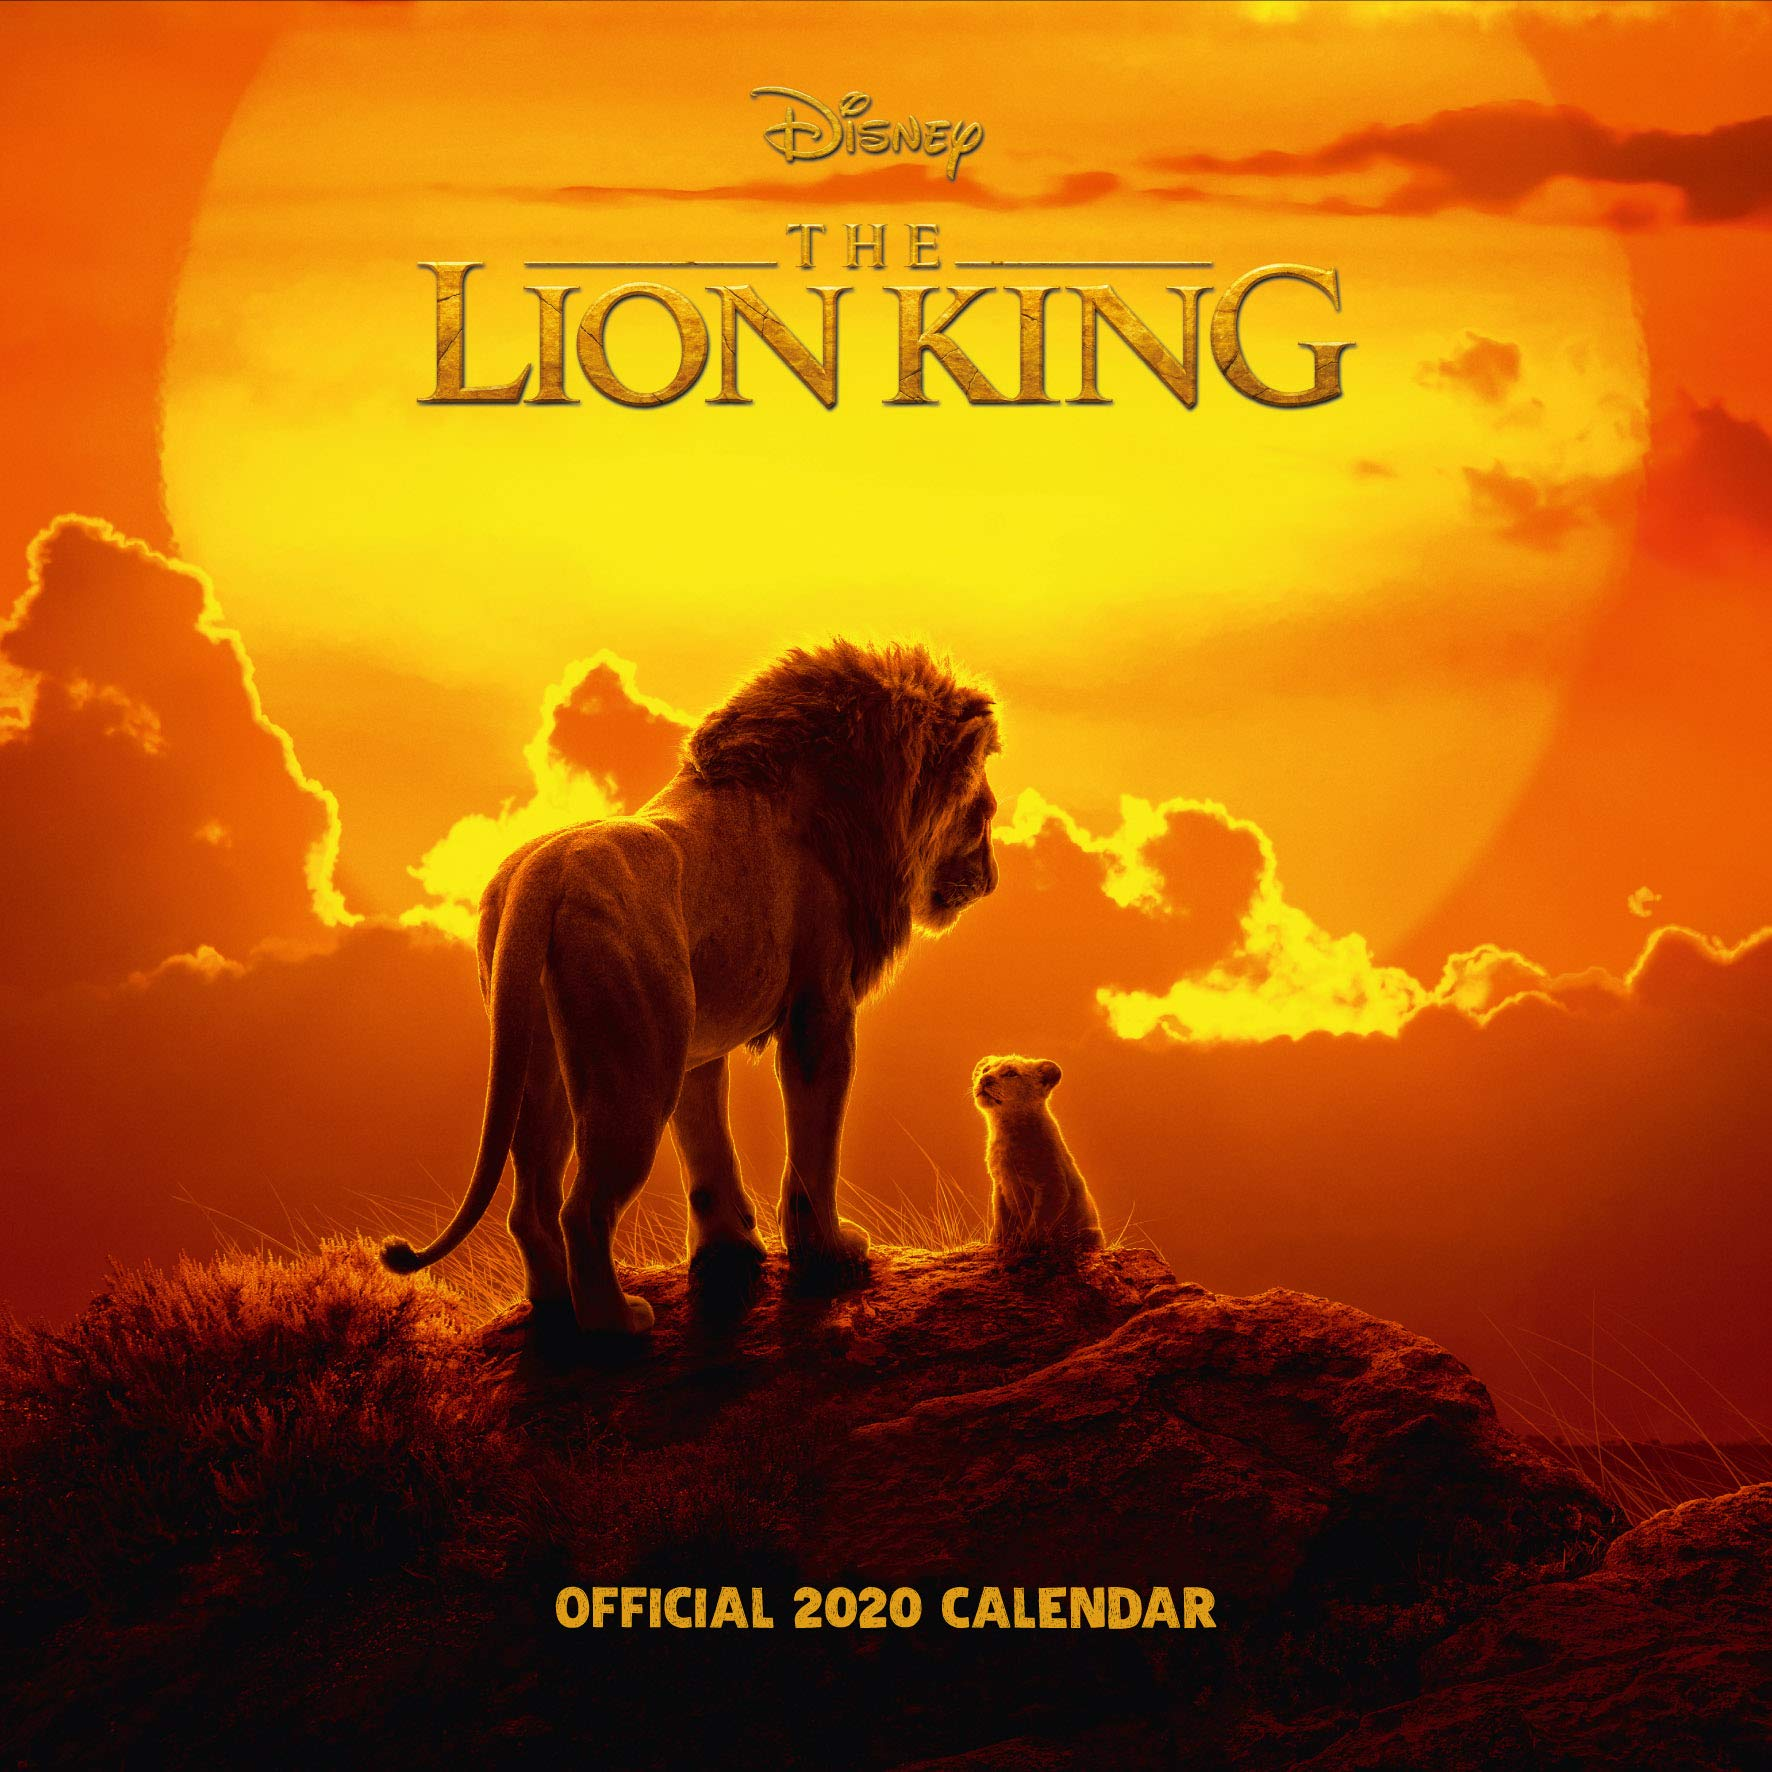 Disney Lion King 2020 Calendar - Official Square Wall Format Calendar by Danilo Promotions Limited